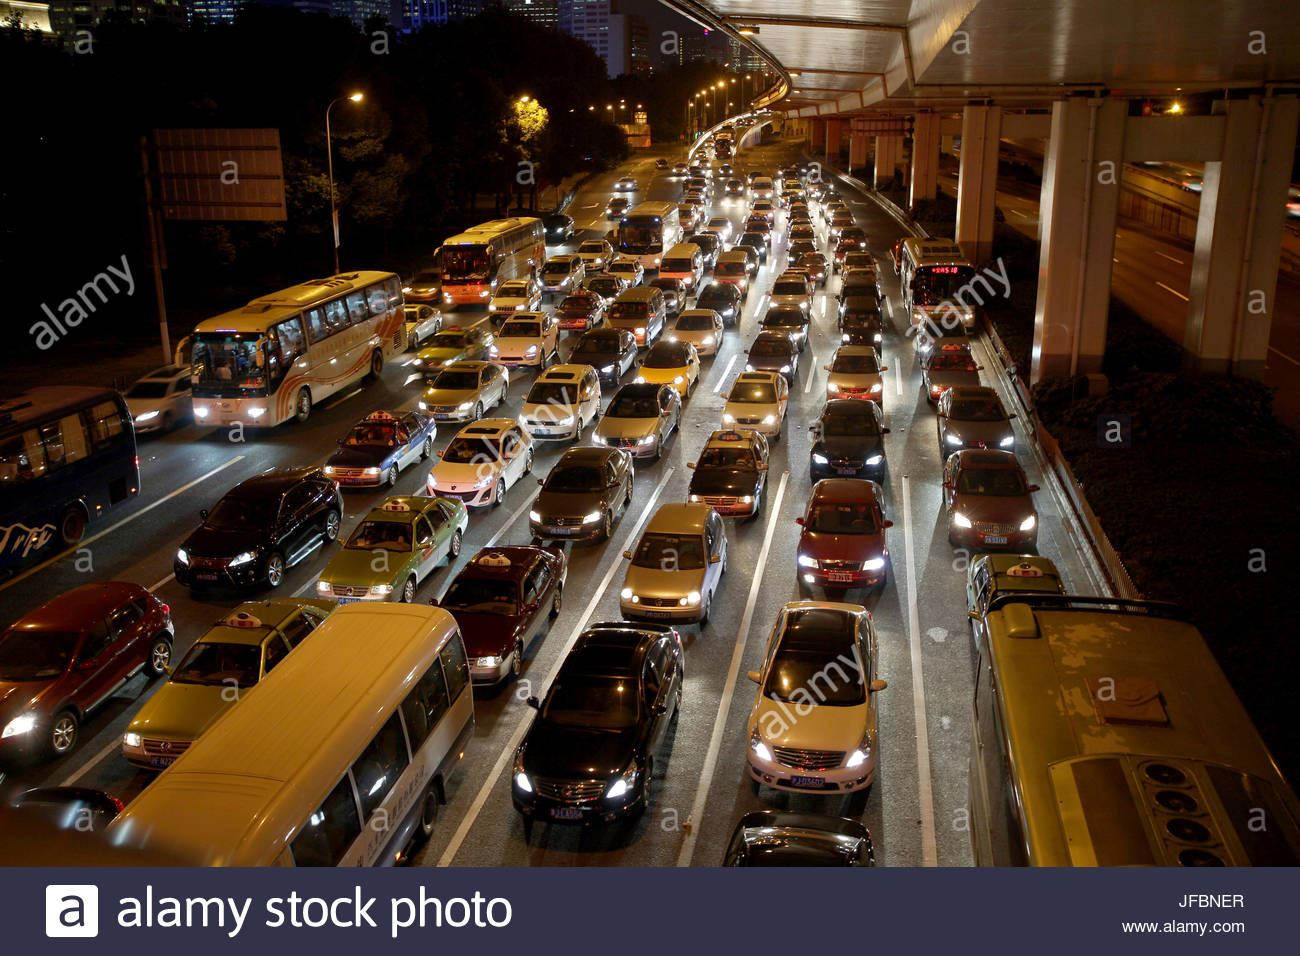 Heavy traffic during rush hour in central Shanghai. - Stock Image